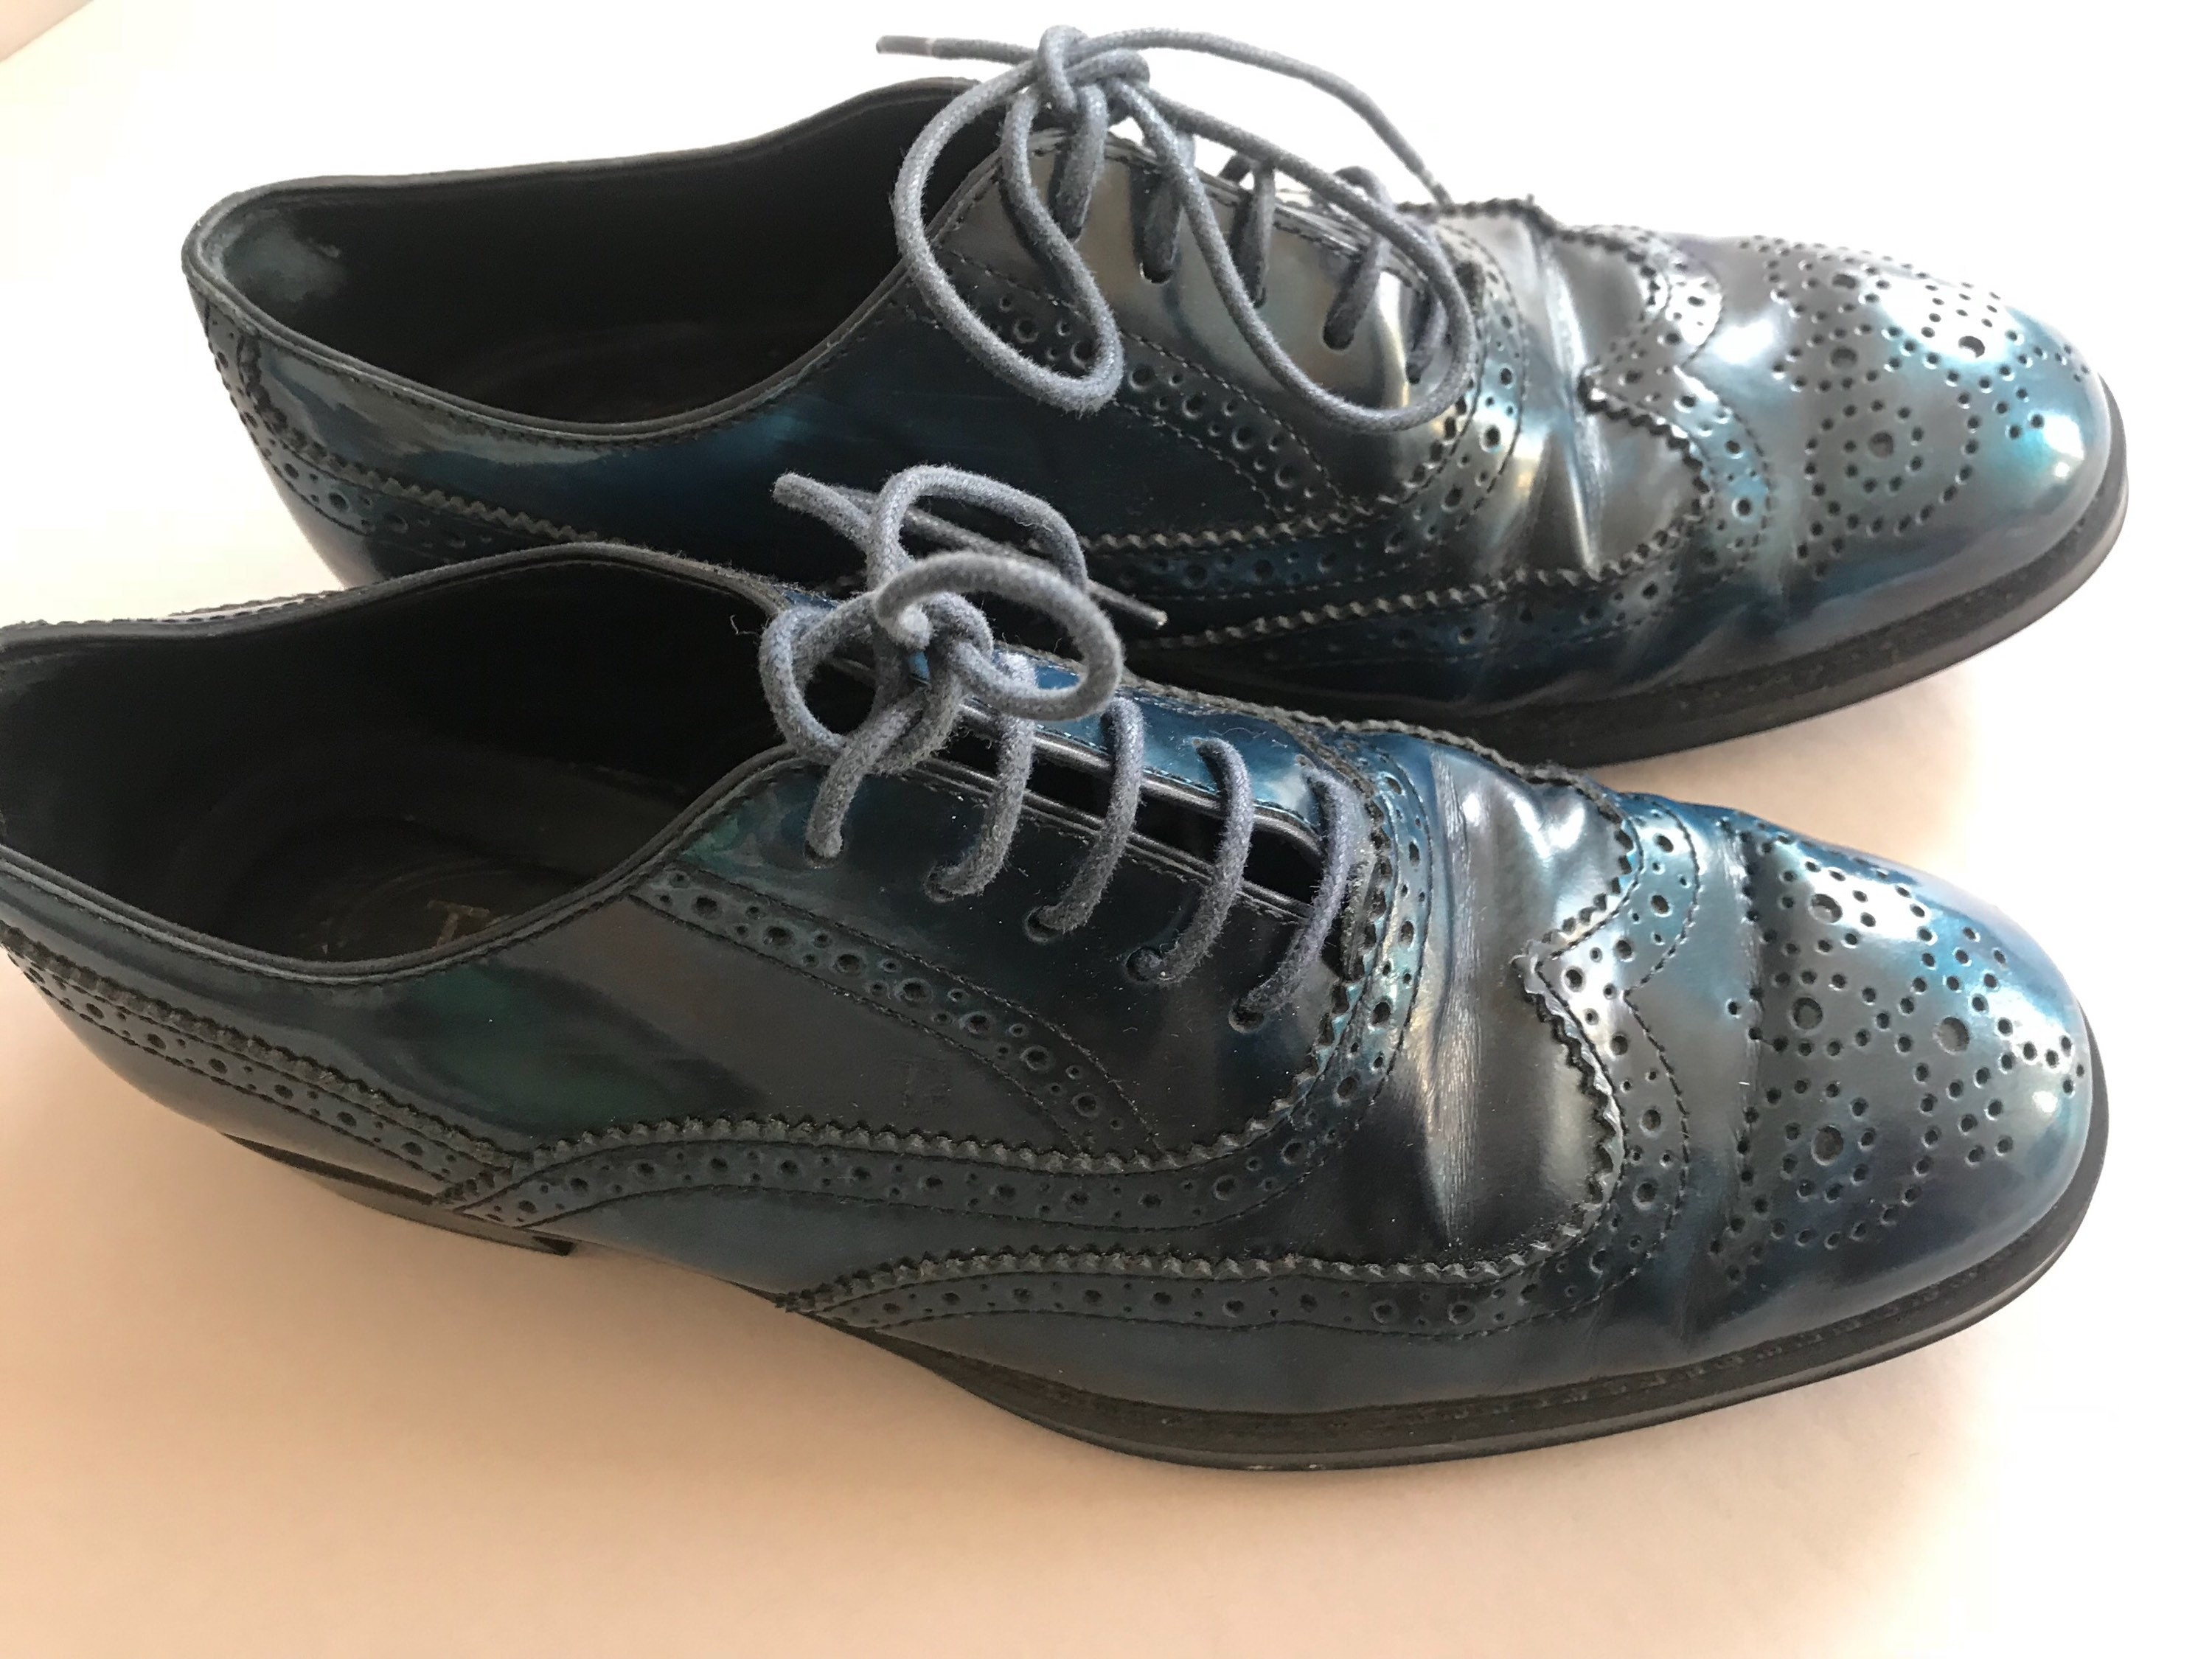 TOD'S Oxford Brogue Metallic Dark Patent Italy Leather Preppy Made in Italy Patent Size European 35 1/2 US 5 1/2  Vintage Italian Shoes 8836a5